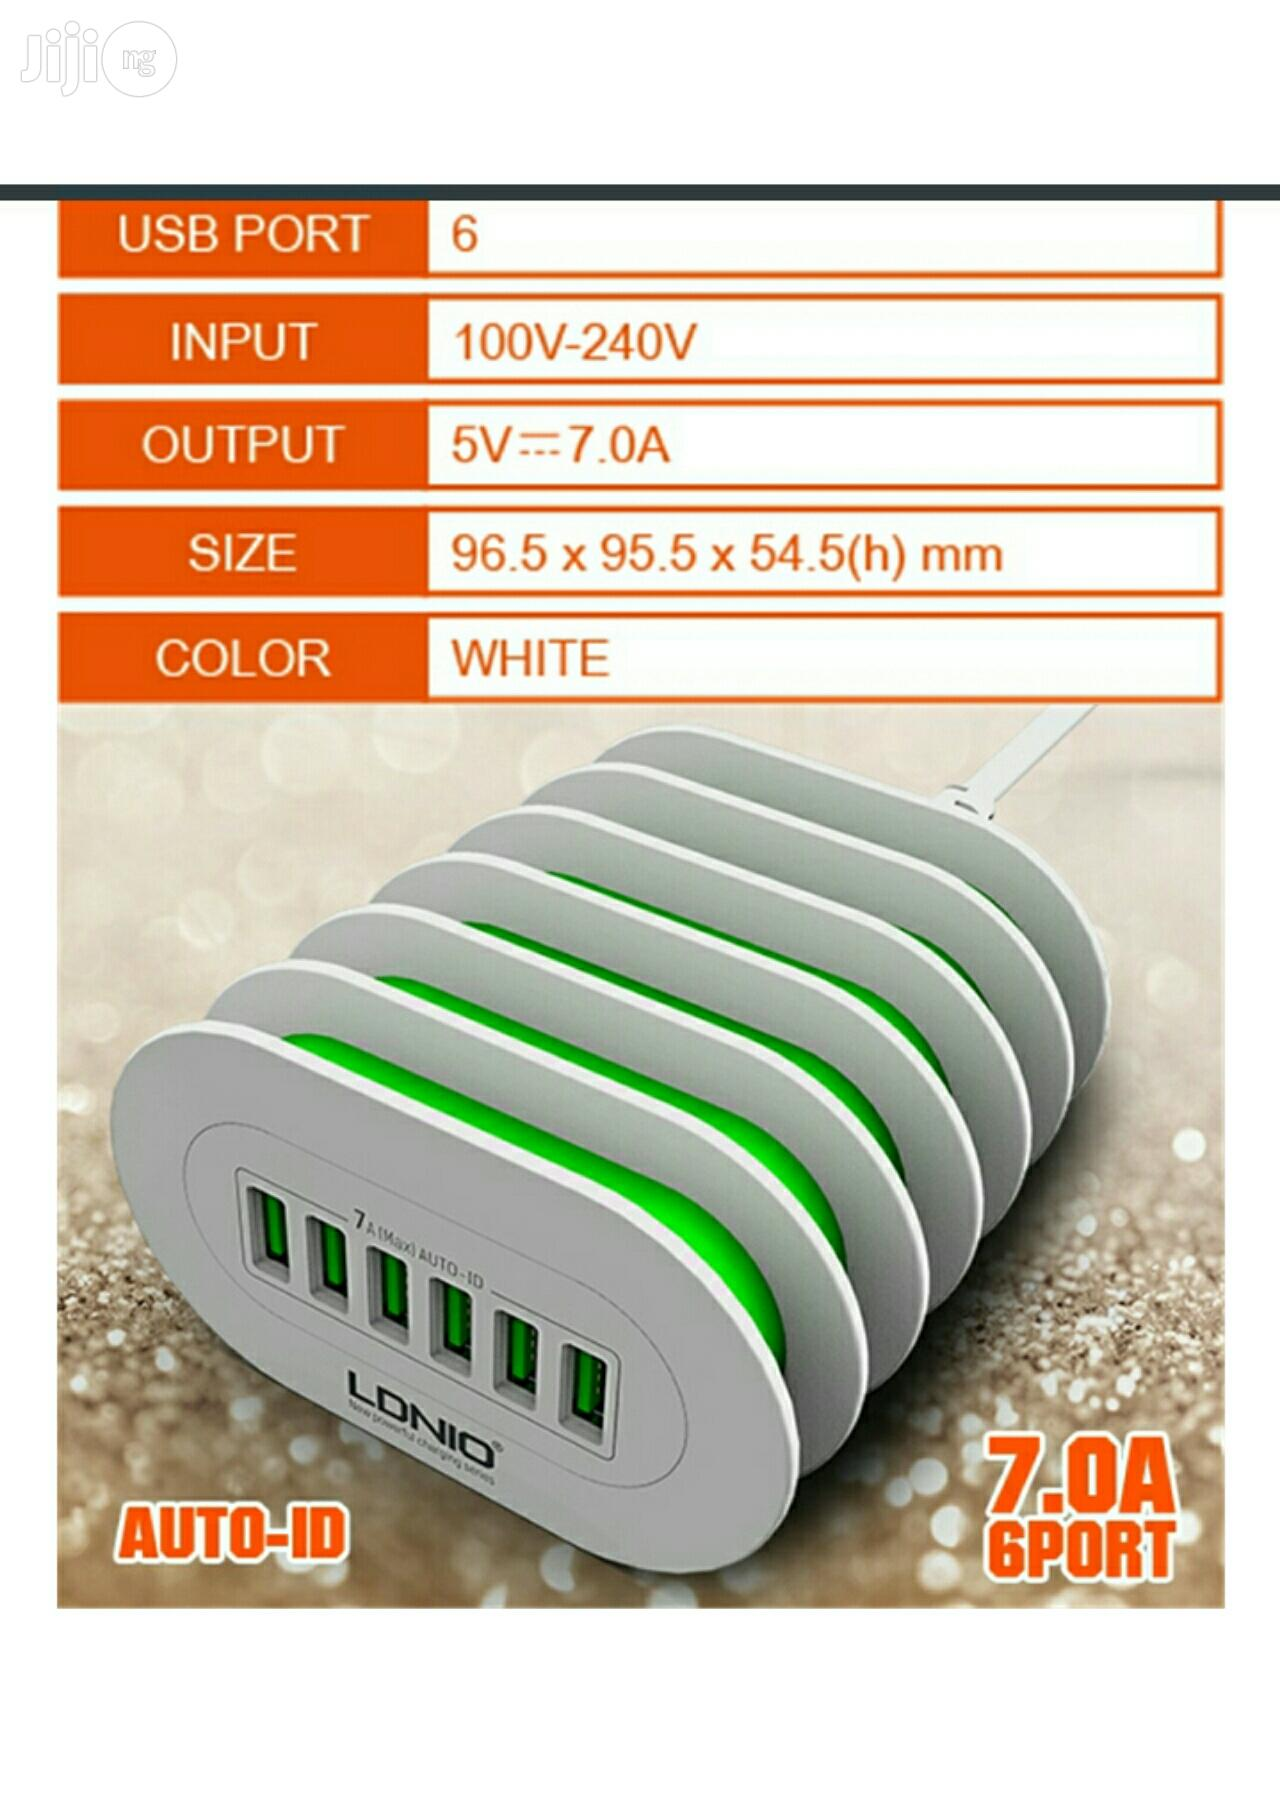 LDNIO 6 USB Multi Ports 7A Charging Station Smart Adaptive   Accessories for Mobile Phones & Tablets for sale in Apapa, Lagos State, Nigeria